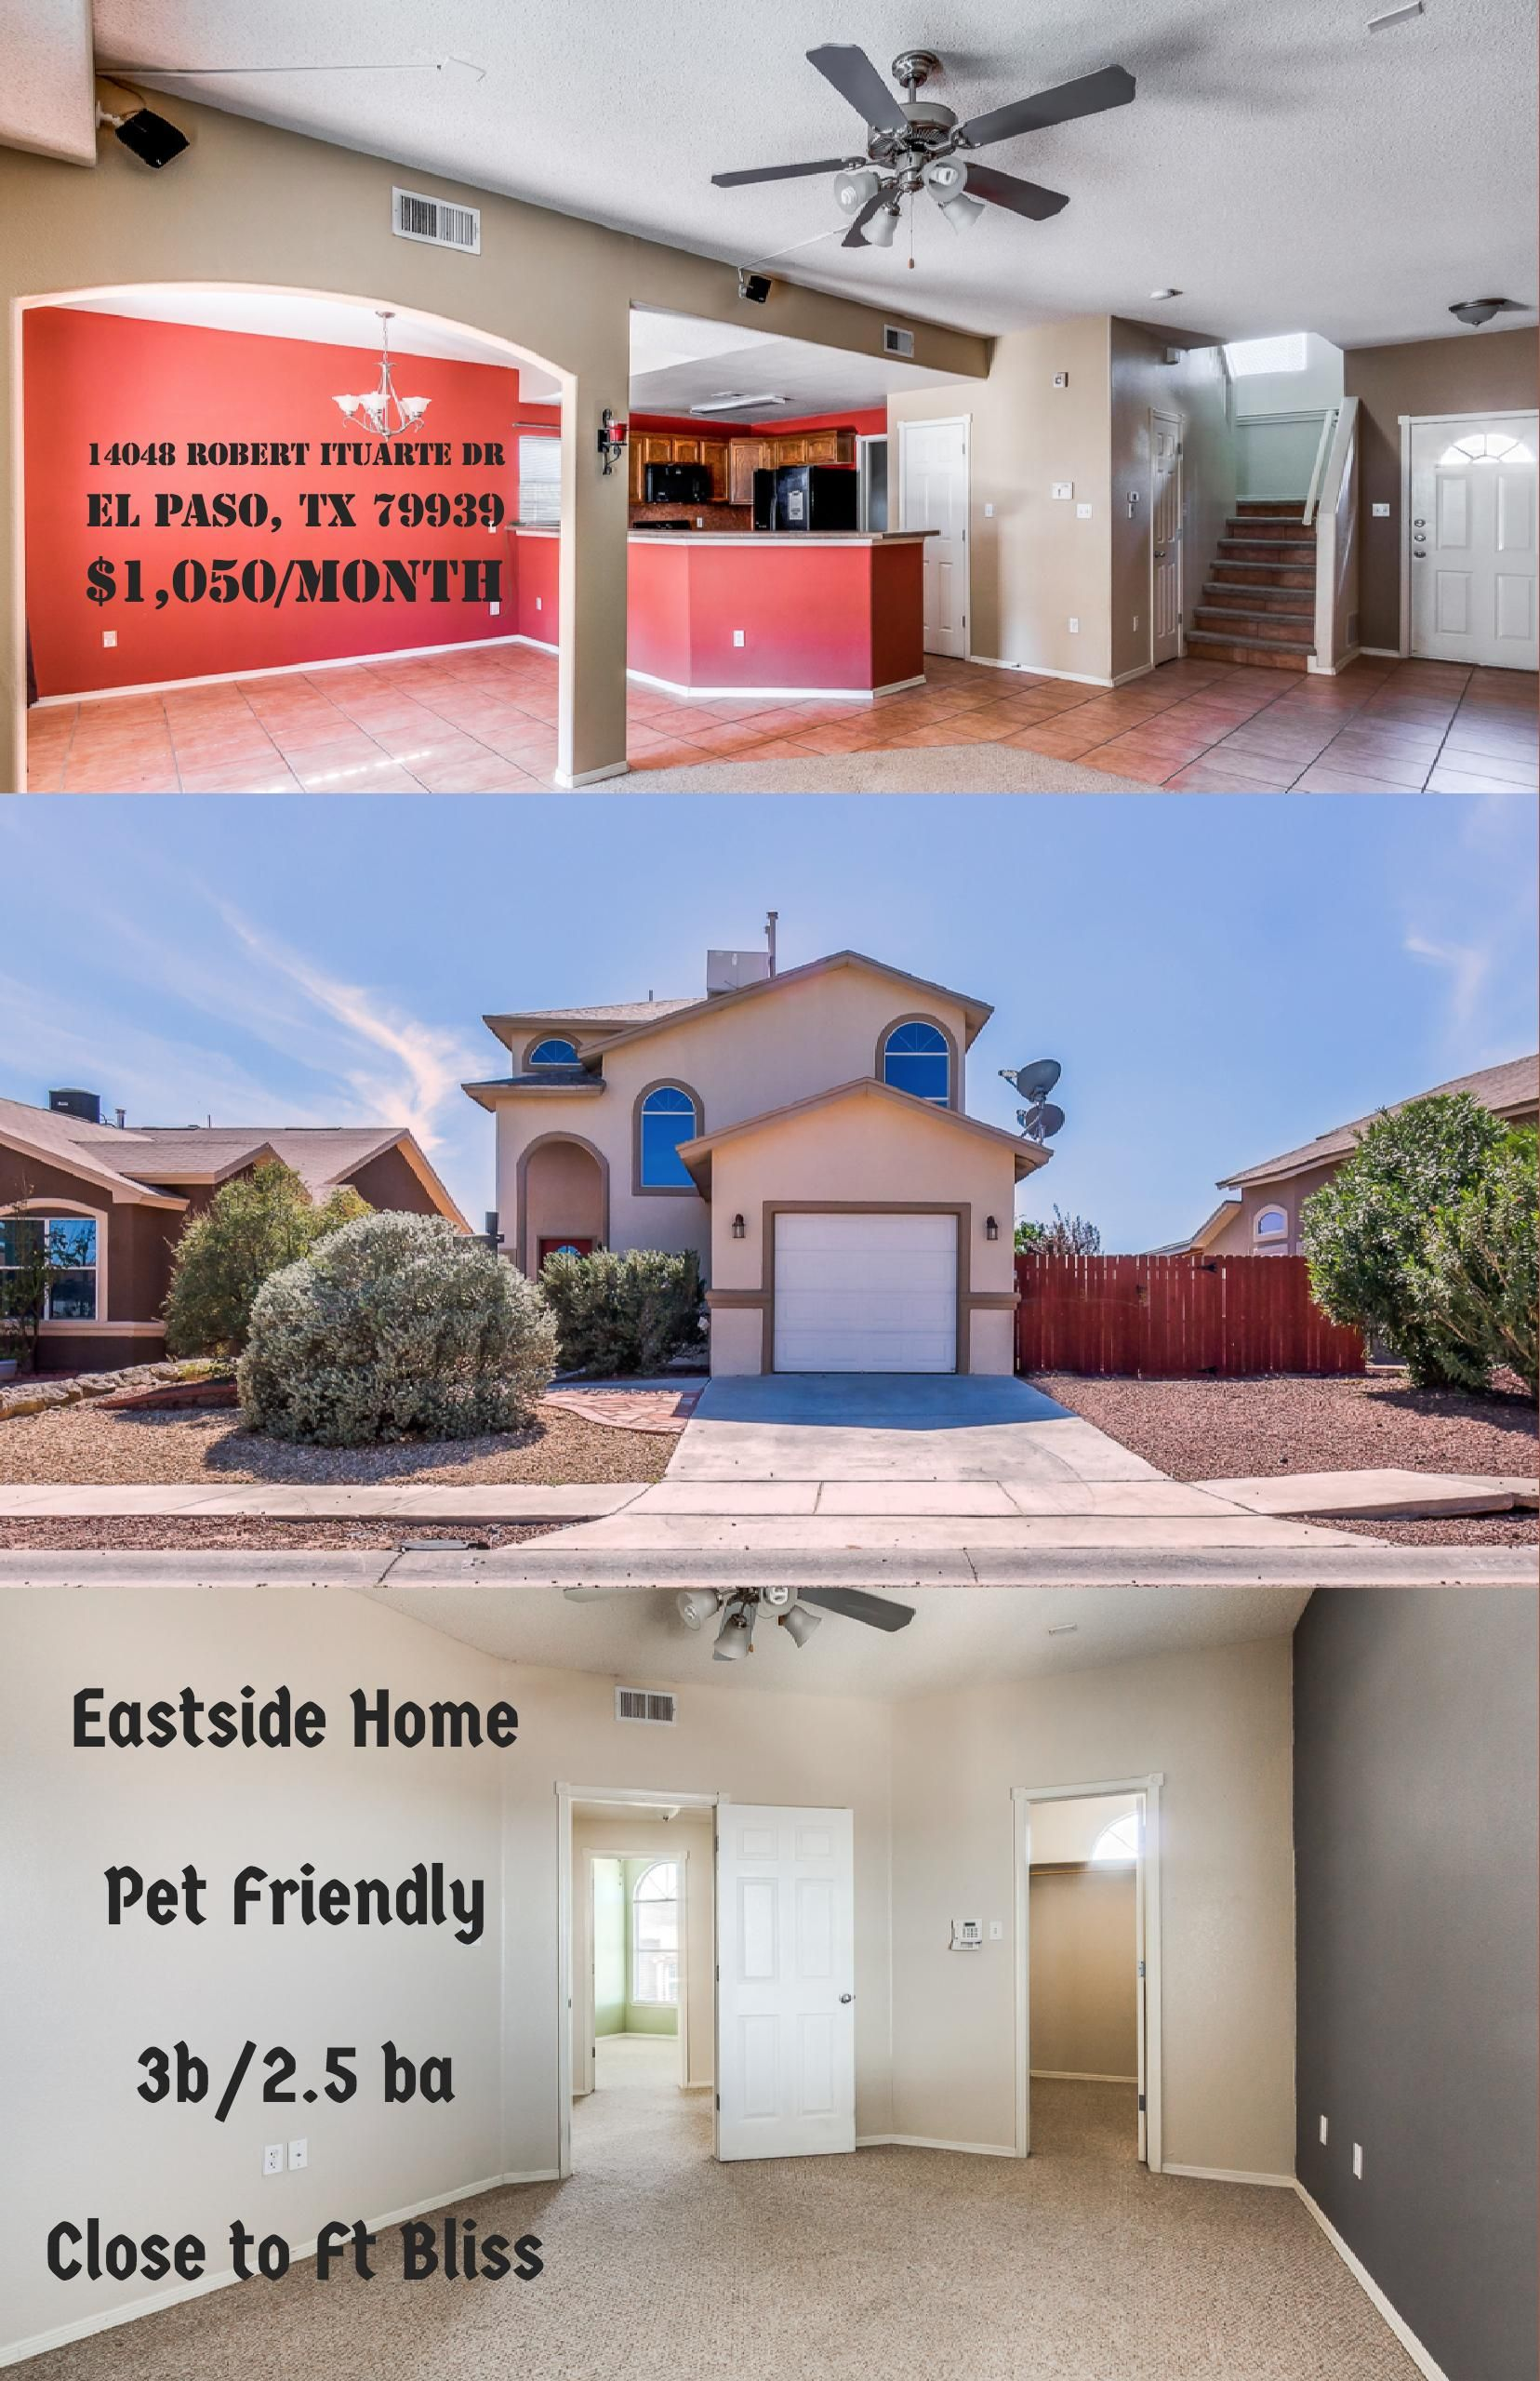 Eastside Home Close To Ft Bliss For Rent Elpaso Elpasotx